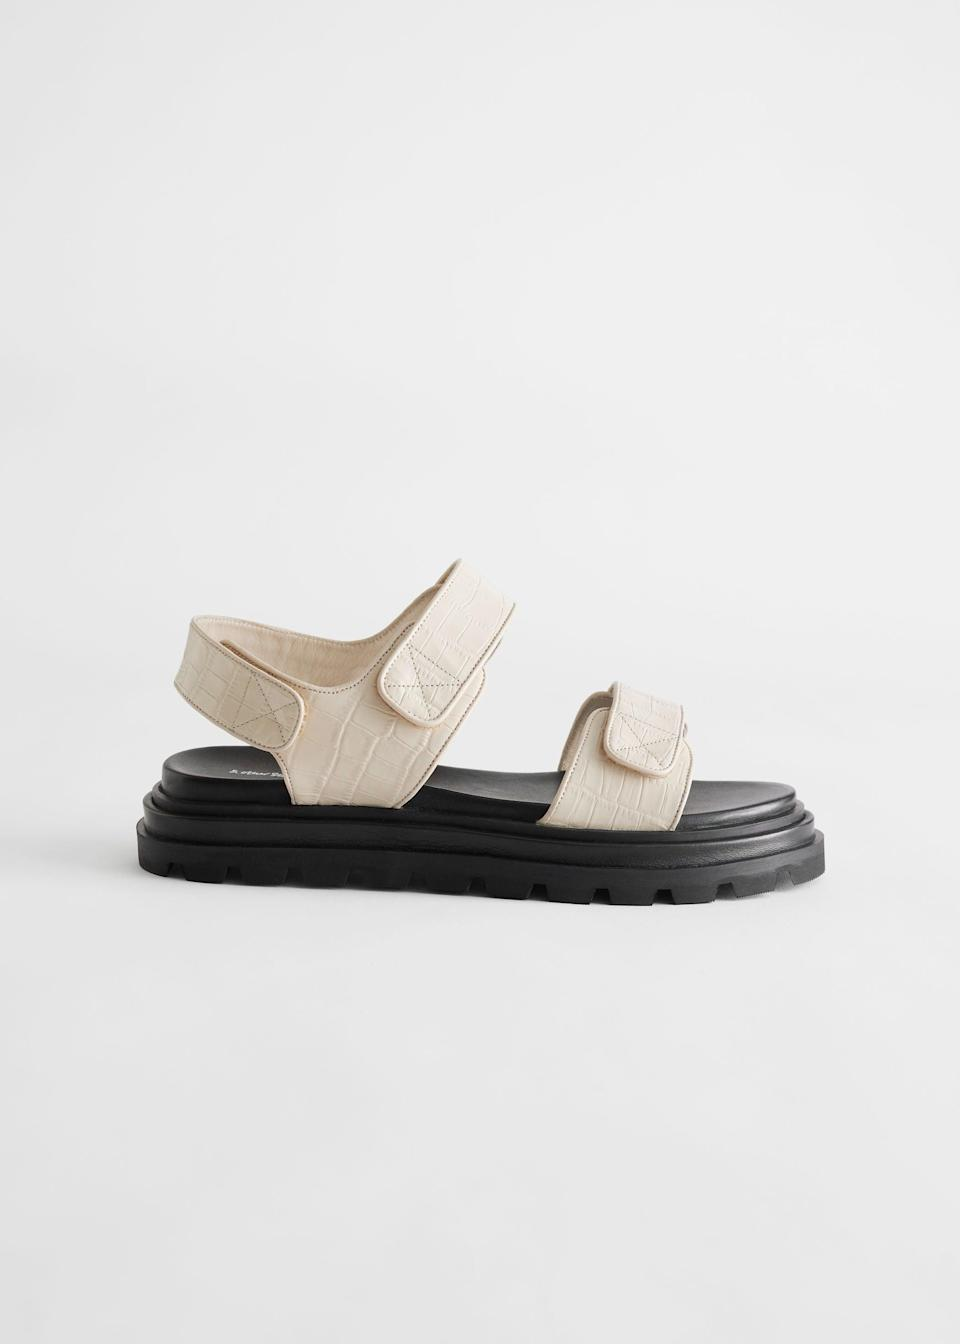 """<br><br><strong>& Other Stories</strong> Croc Embossed Leather Sandals, $, available at <a href=""""https://www.stories.com/en_gbp/shoes/flats/product.croc-embossed-leather-sandals-beige.0963309001.html"""" rel=""""nofollow noopener"""" target=""""_blank"""" data-ylk=""""slk:& Other Stories"""" class=""""link rapid-noclick-resp"""">& Other Stories</a>"""